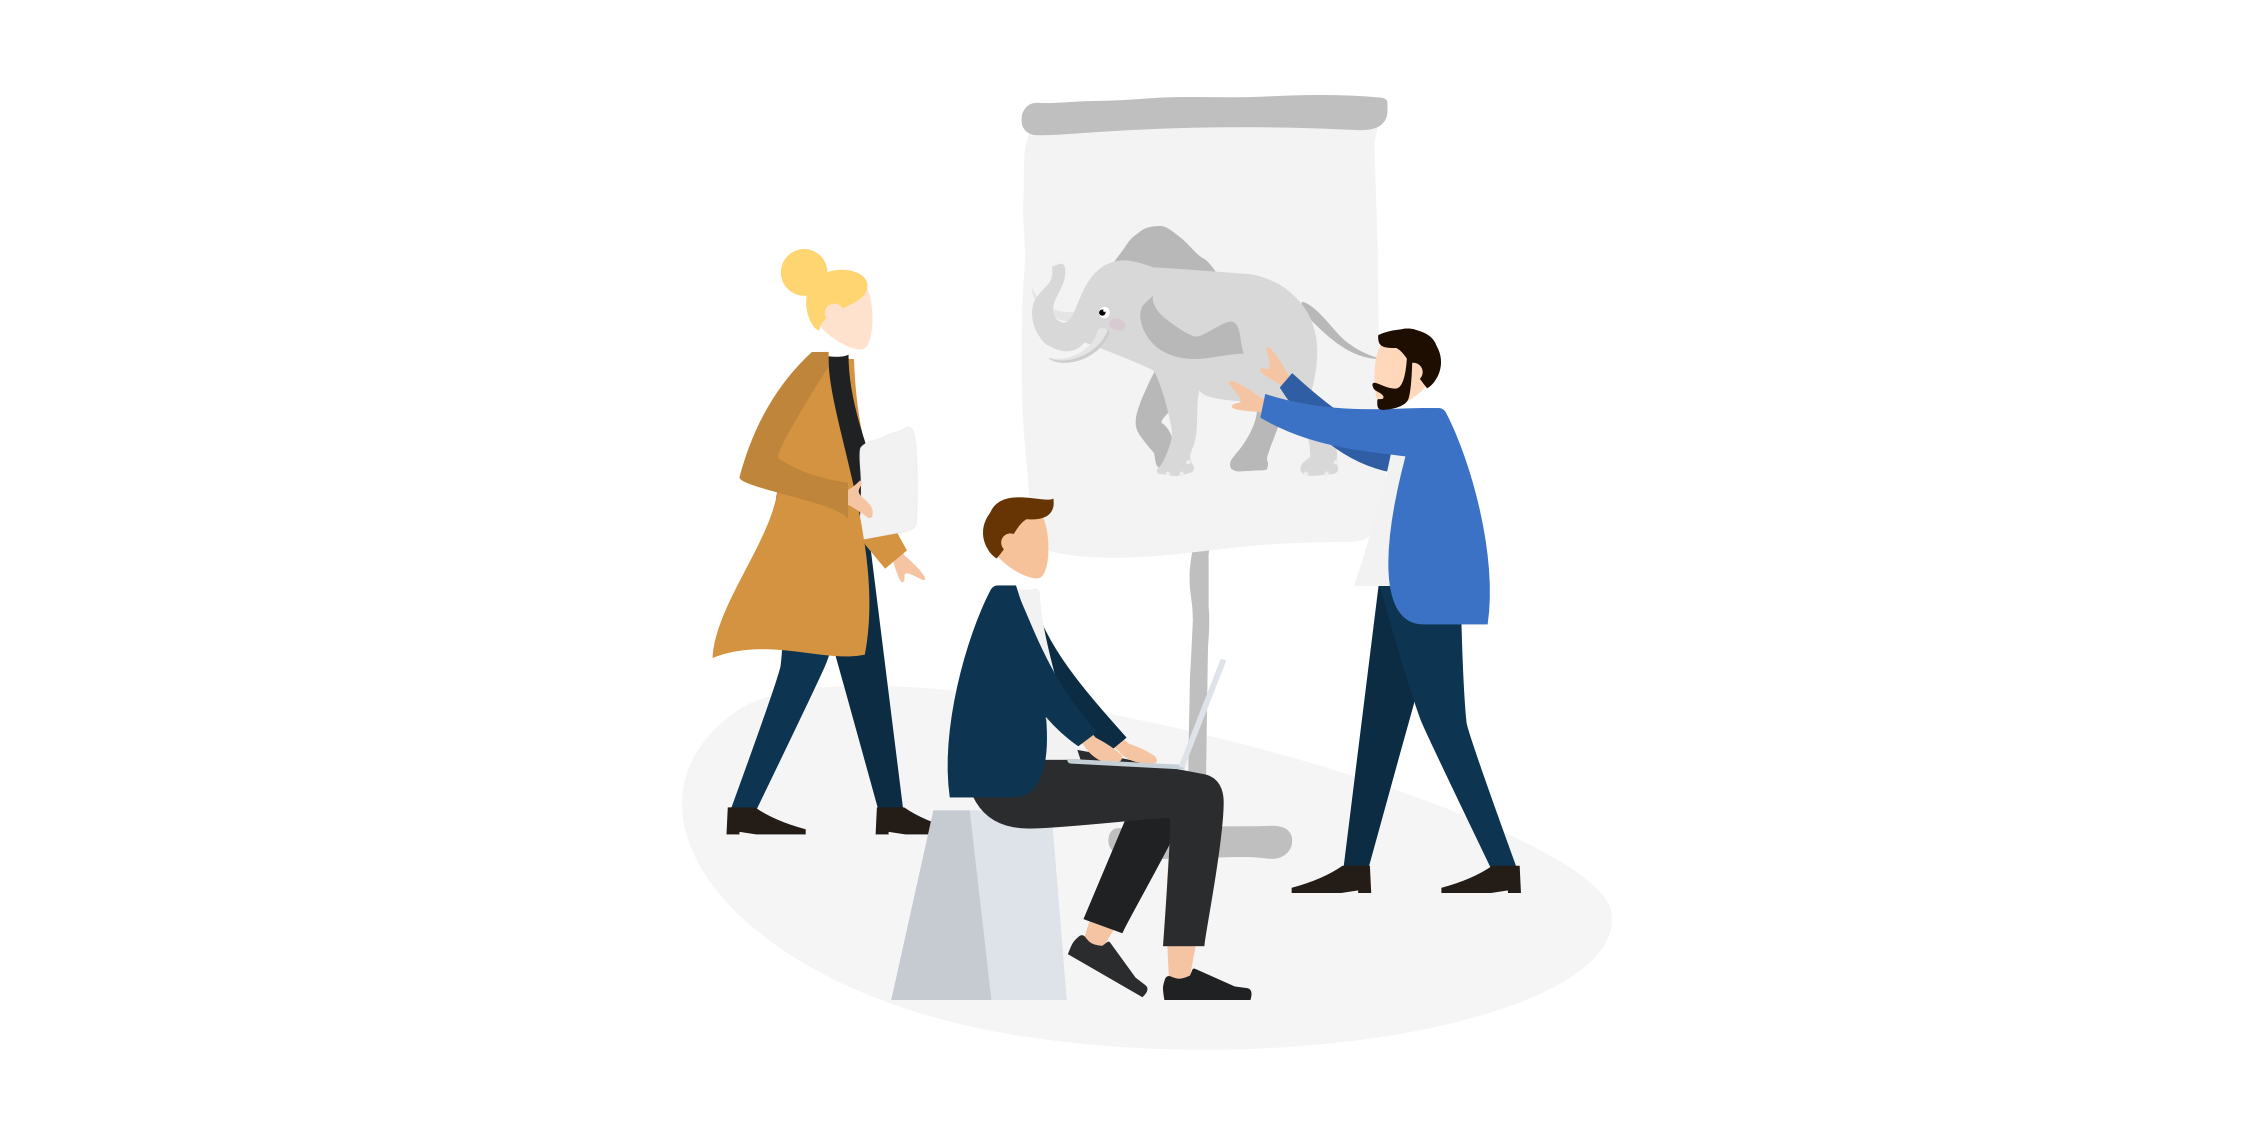 Employees discuss in front of a flipchart with a drawn elephant